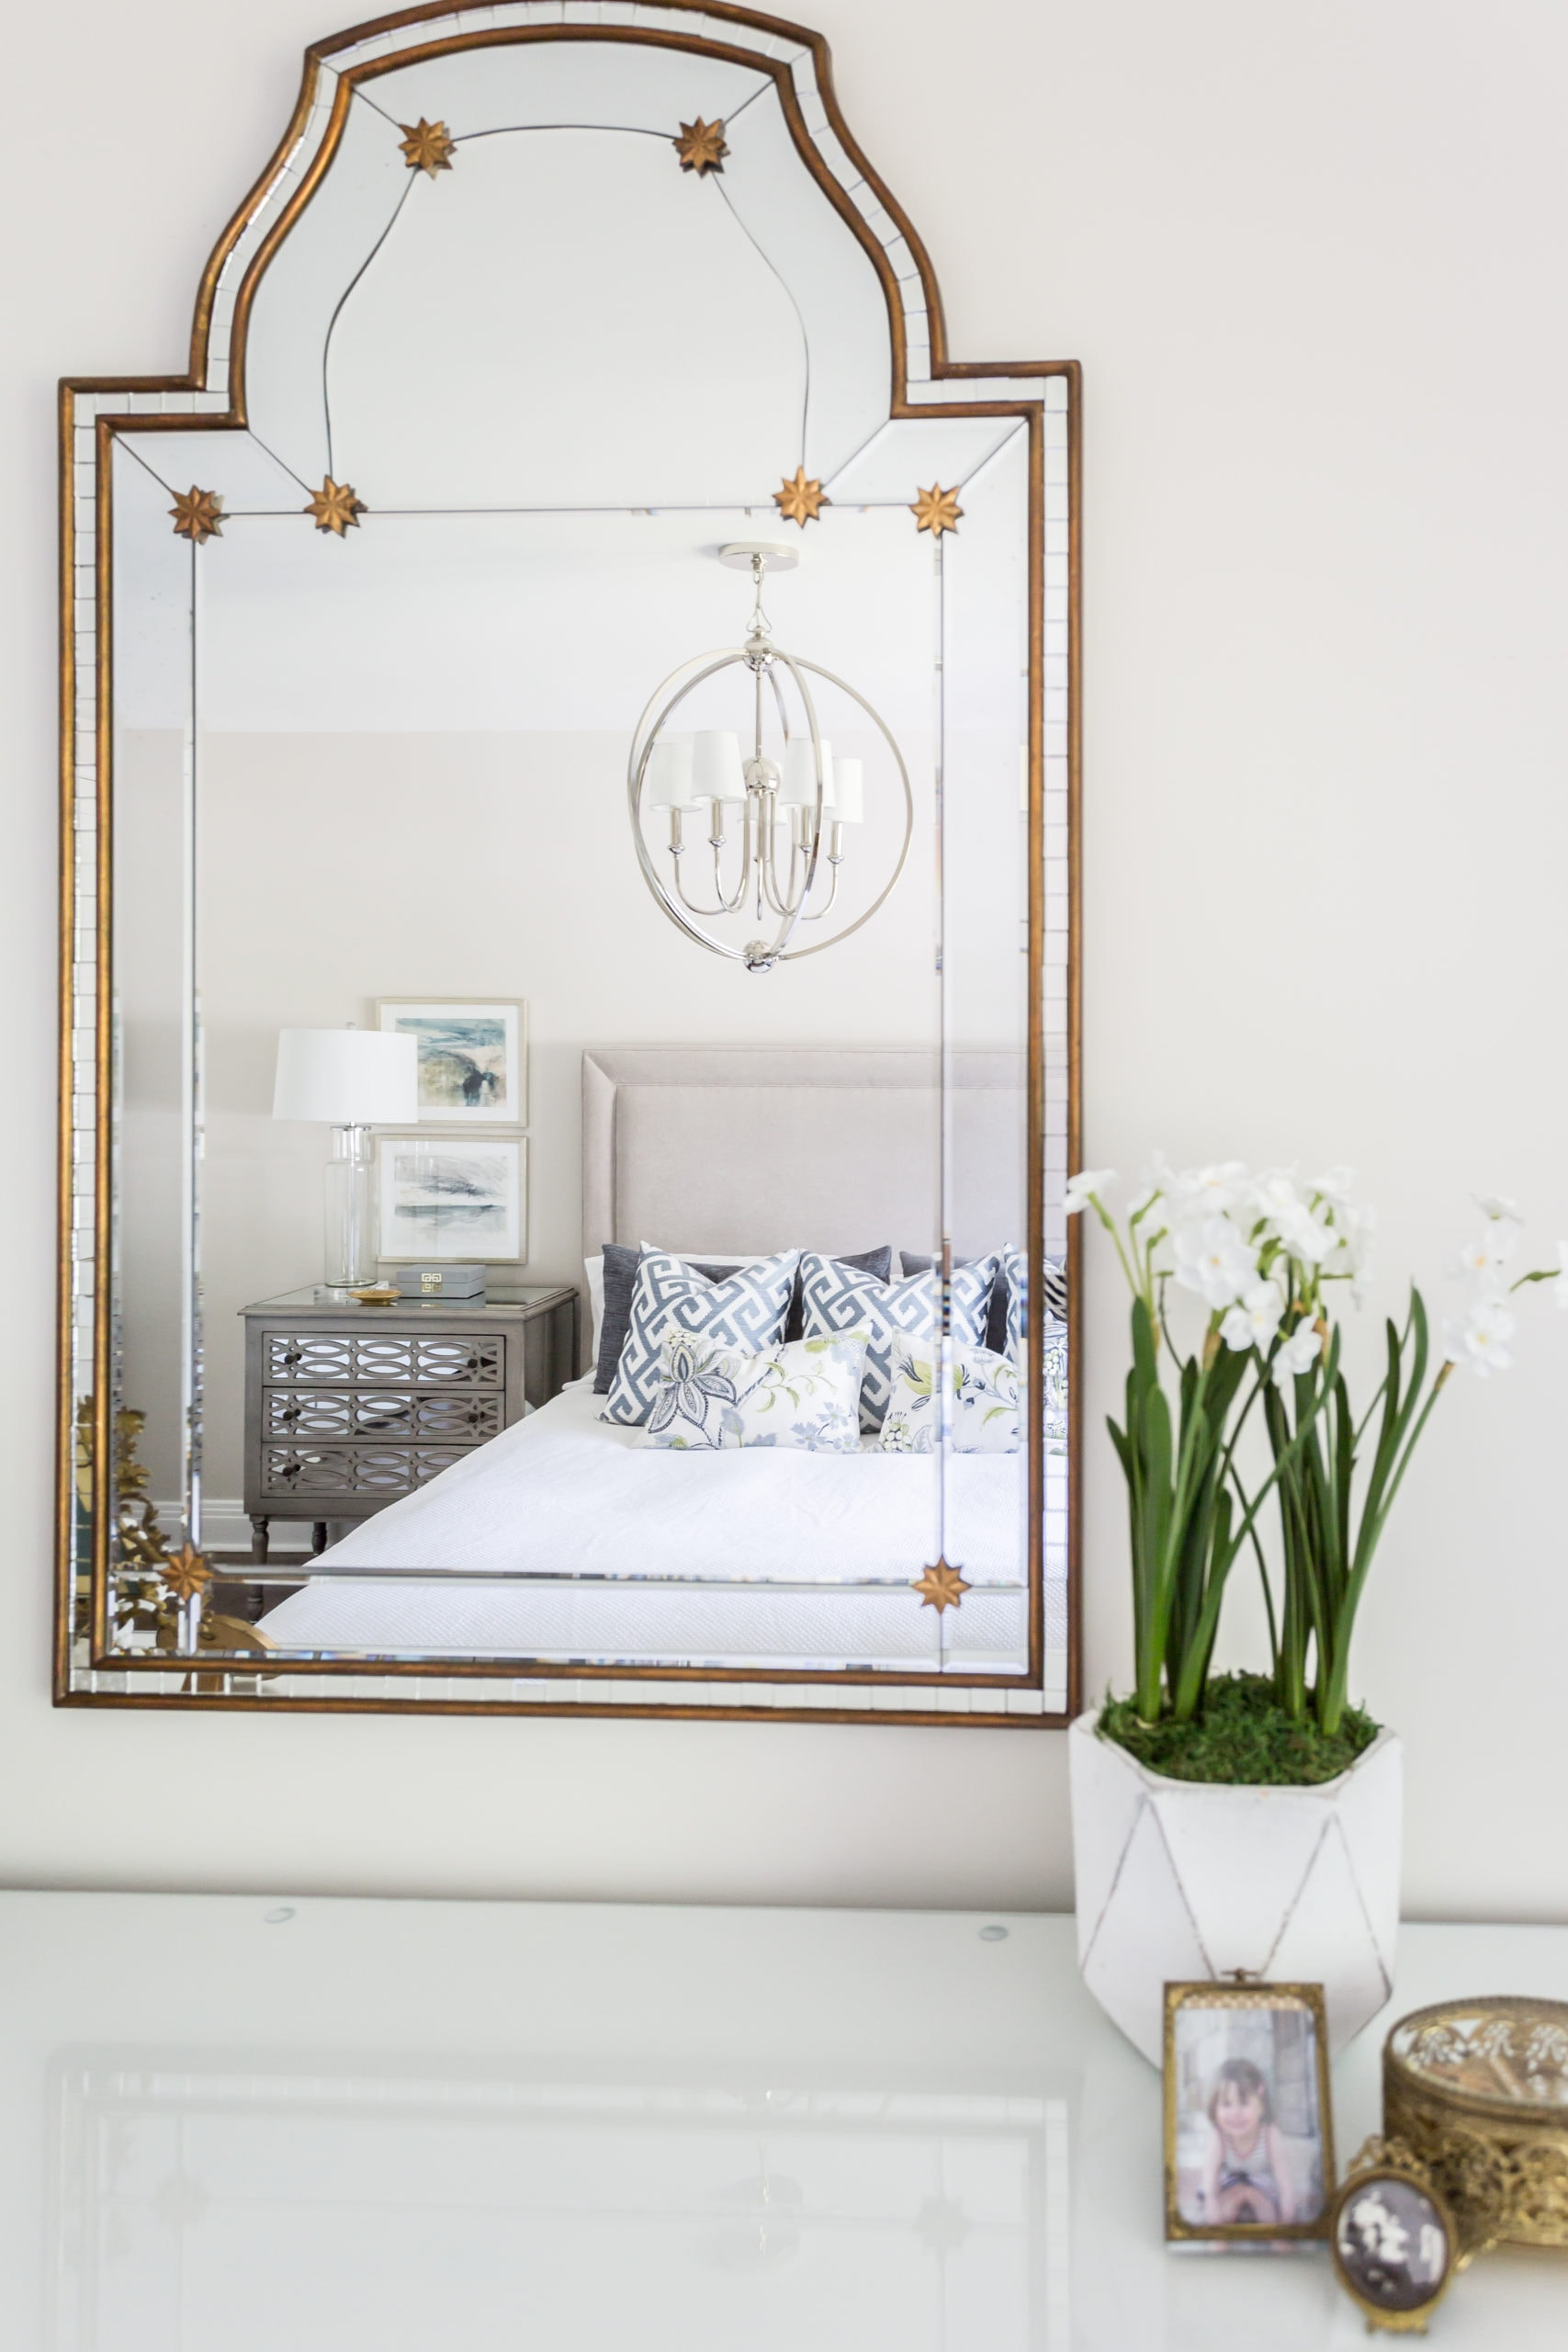 Mirror within master bedroom reflecting the bed